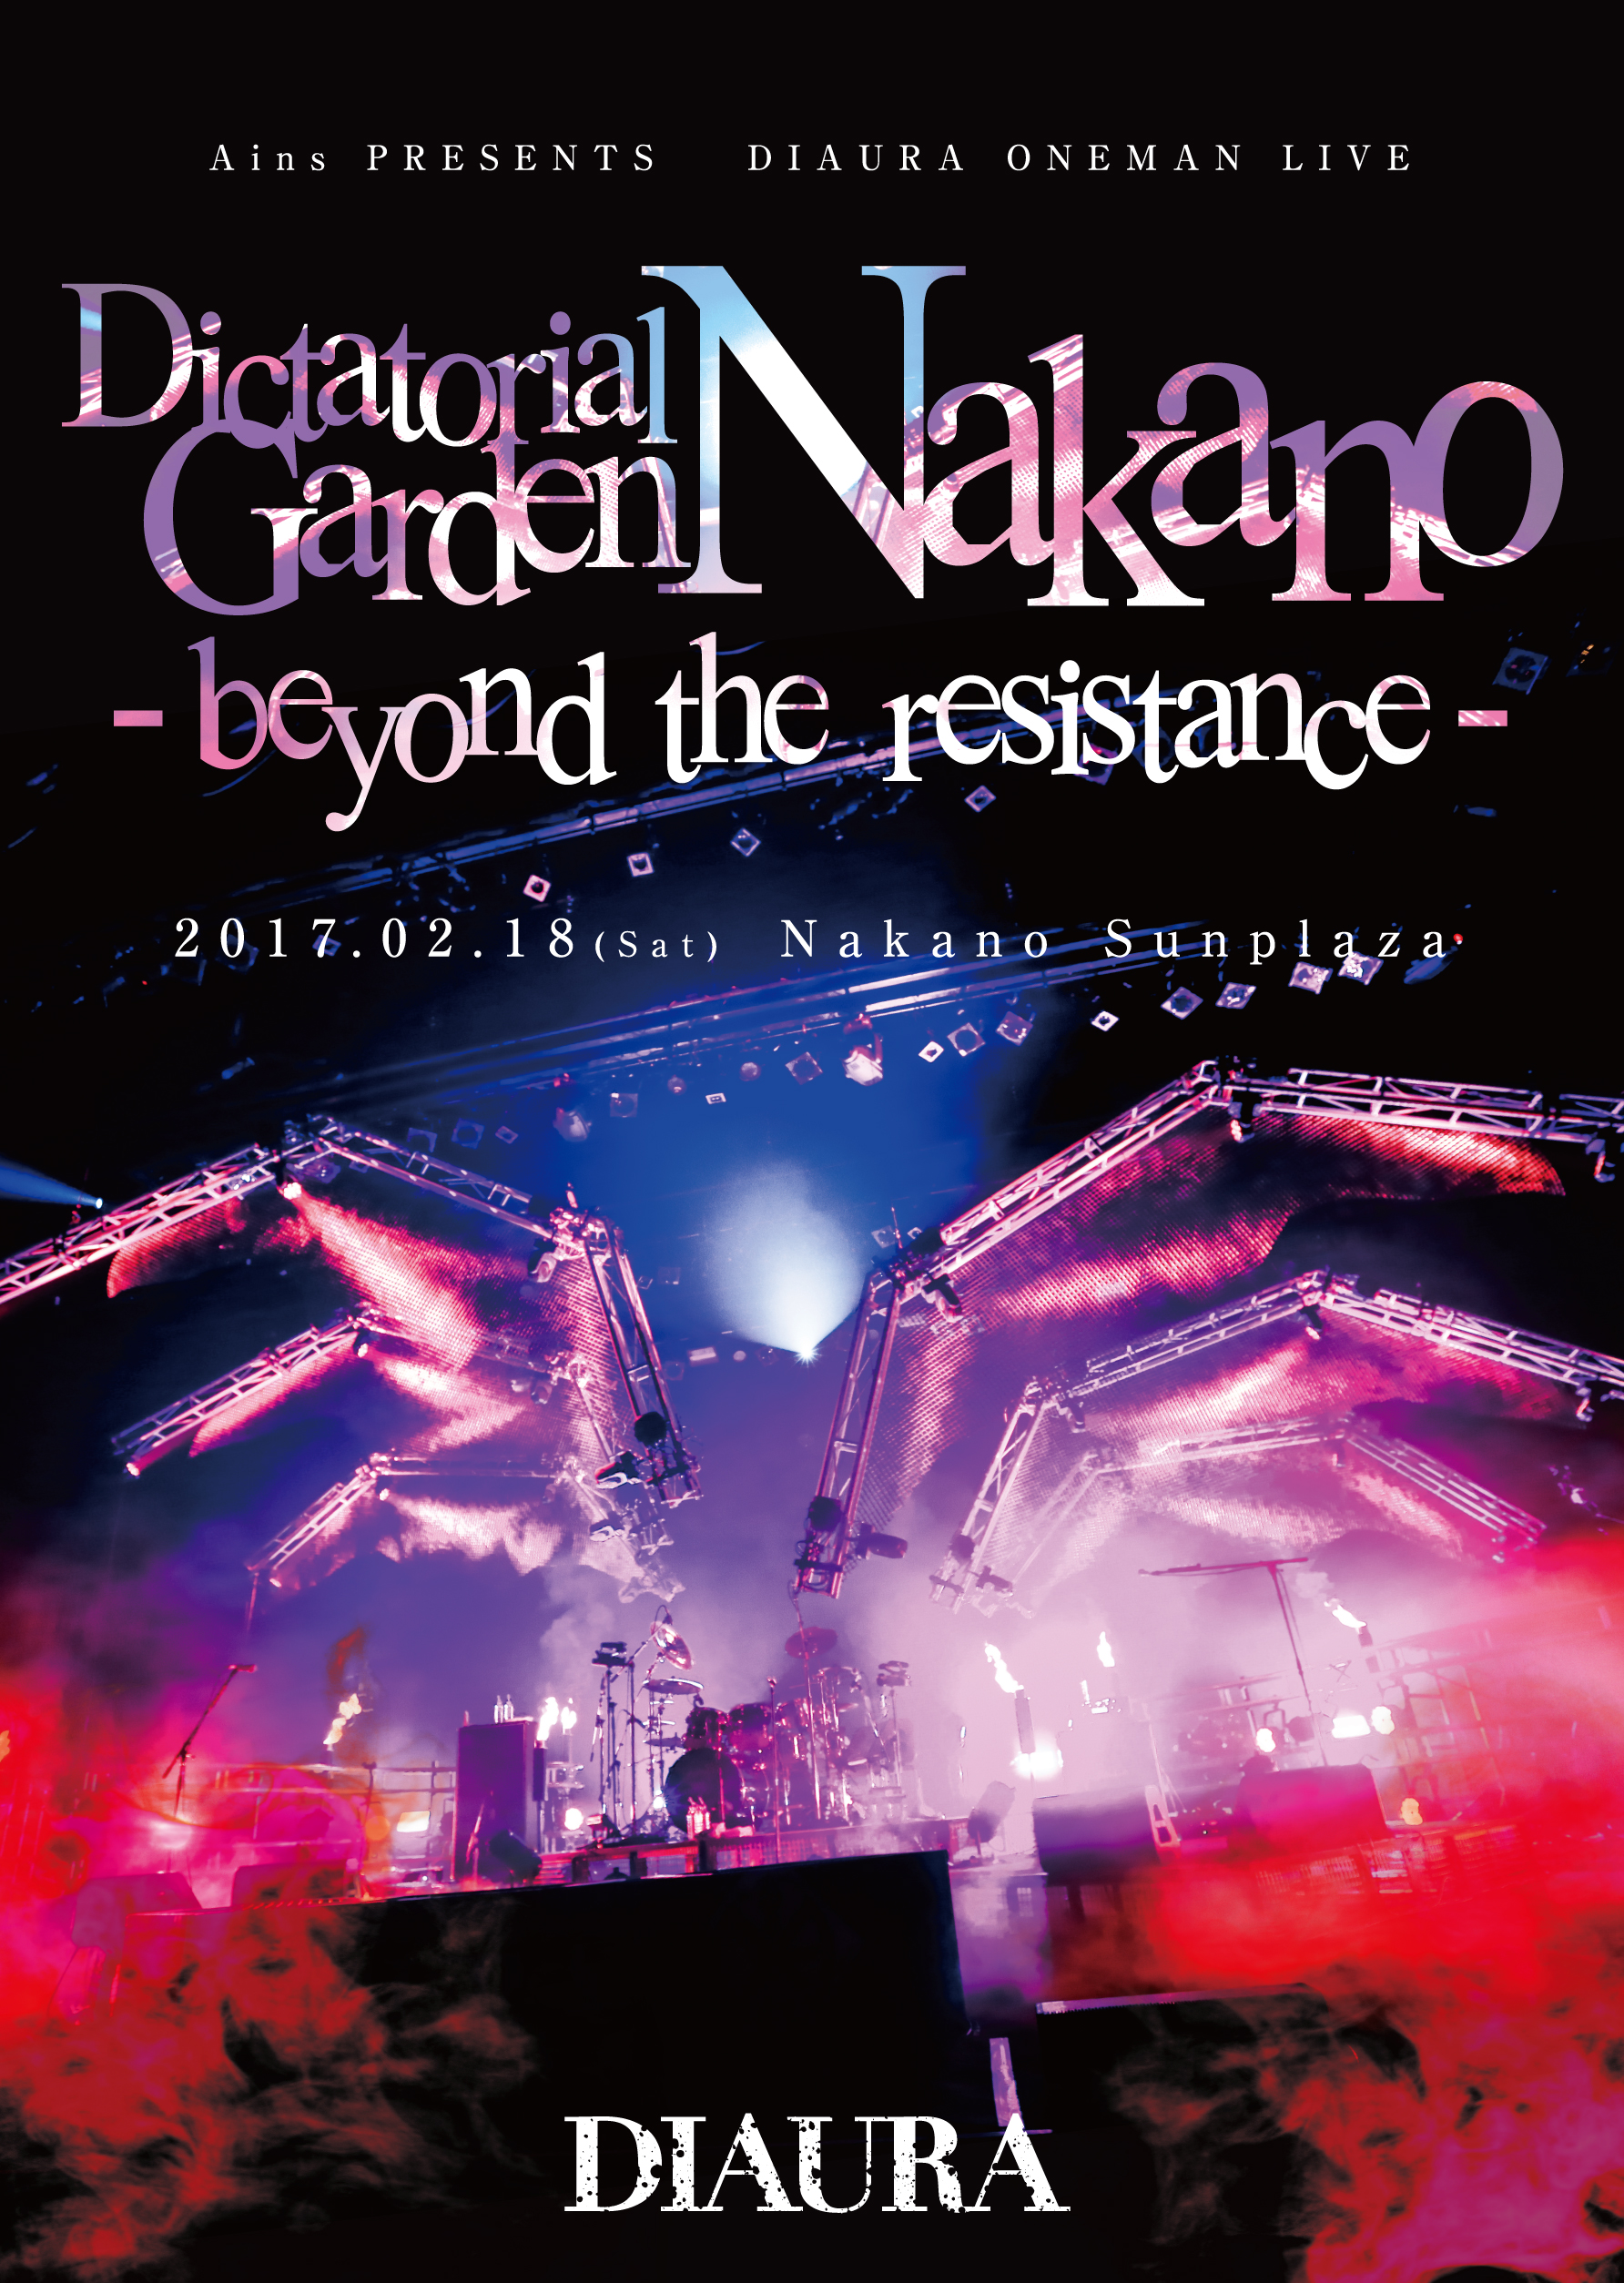 ディオーラ の DVD Dictatorial Garden Nakano -beyond the resistance-